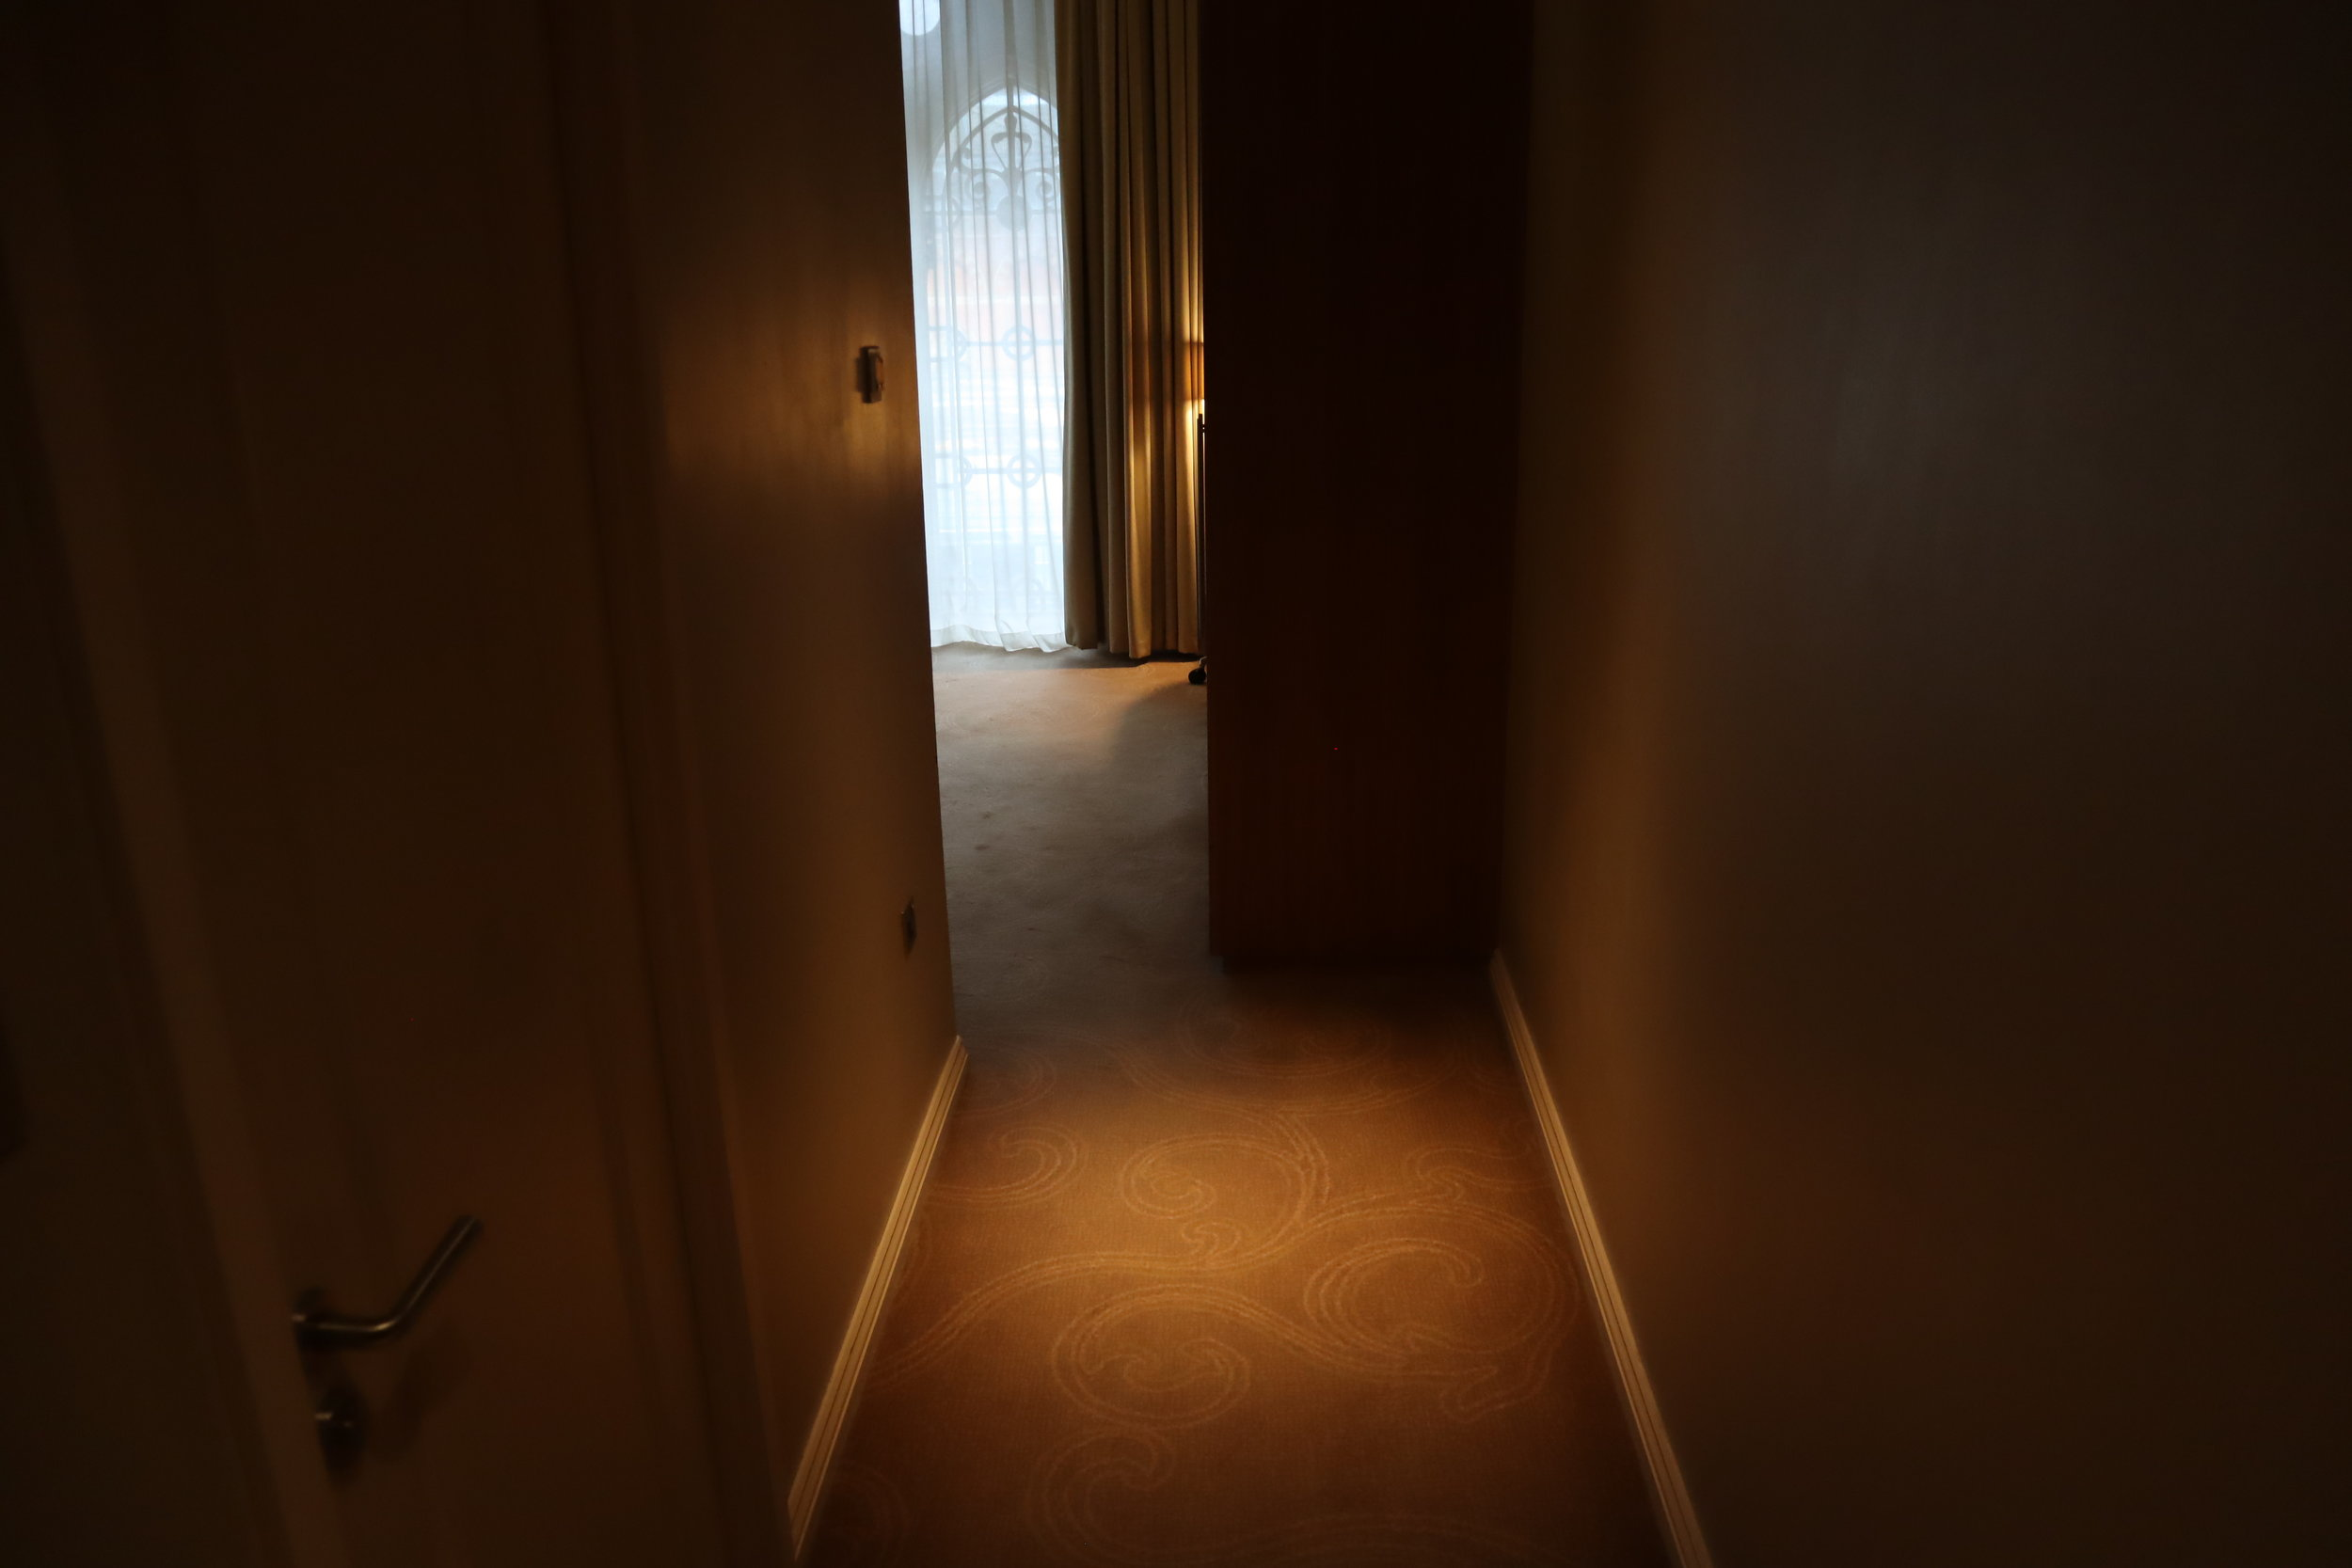 St. Pancras Renaissance Hotel London – Larger Barlow room hallway